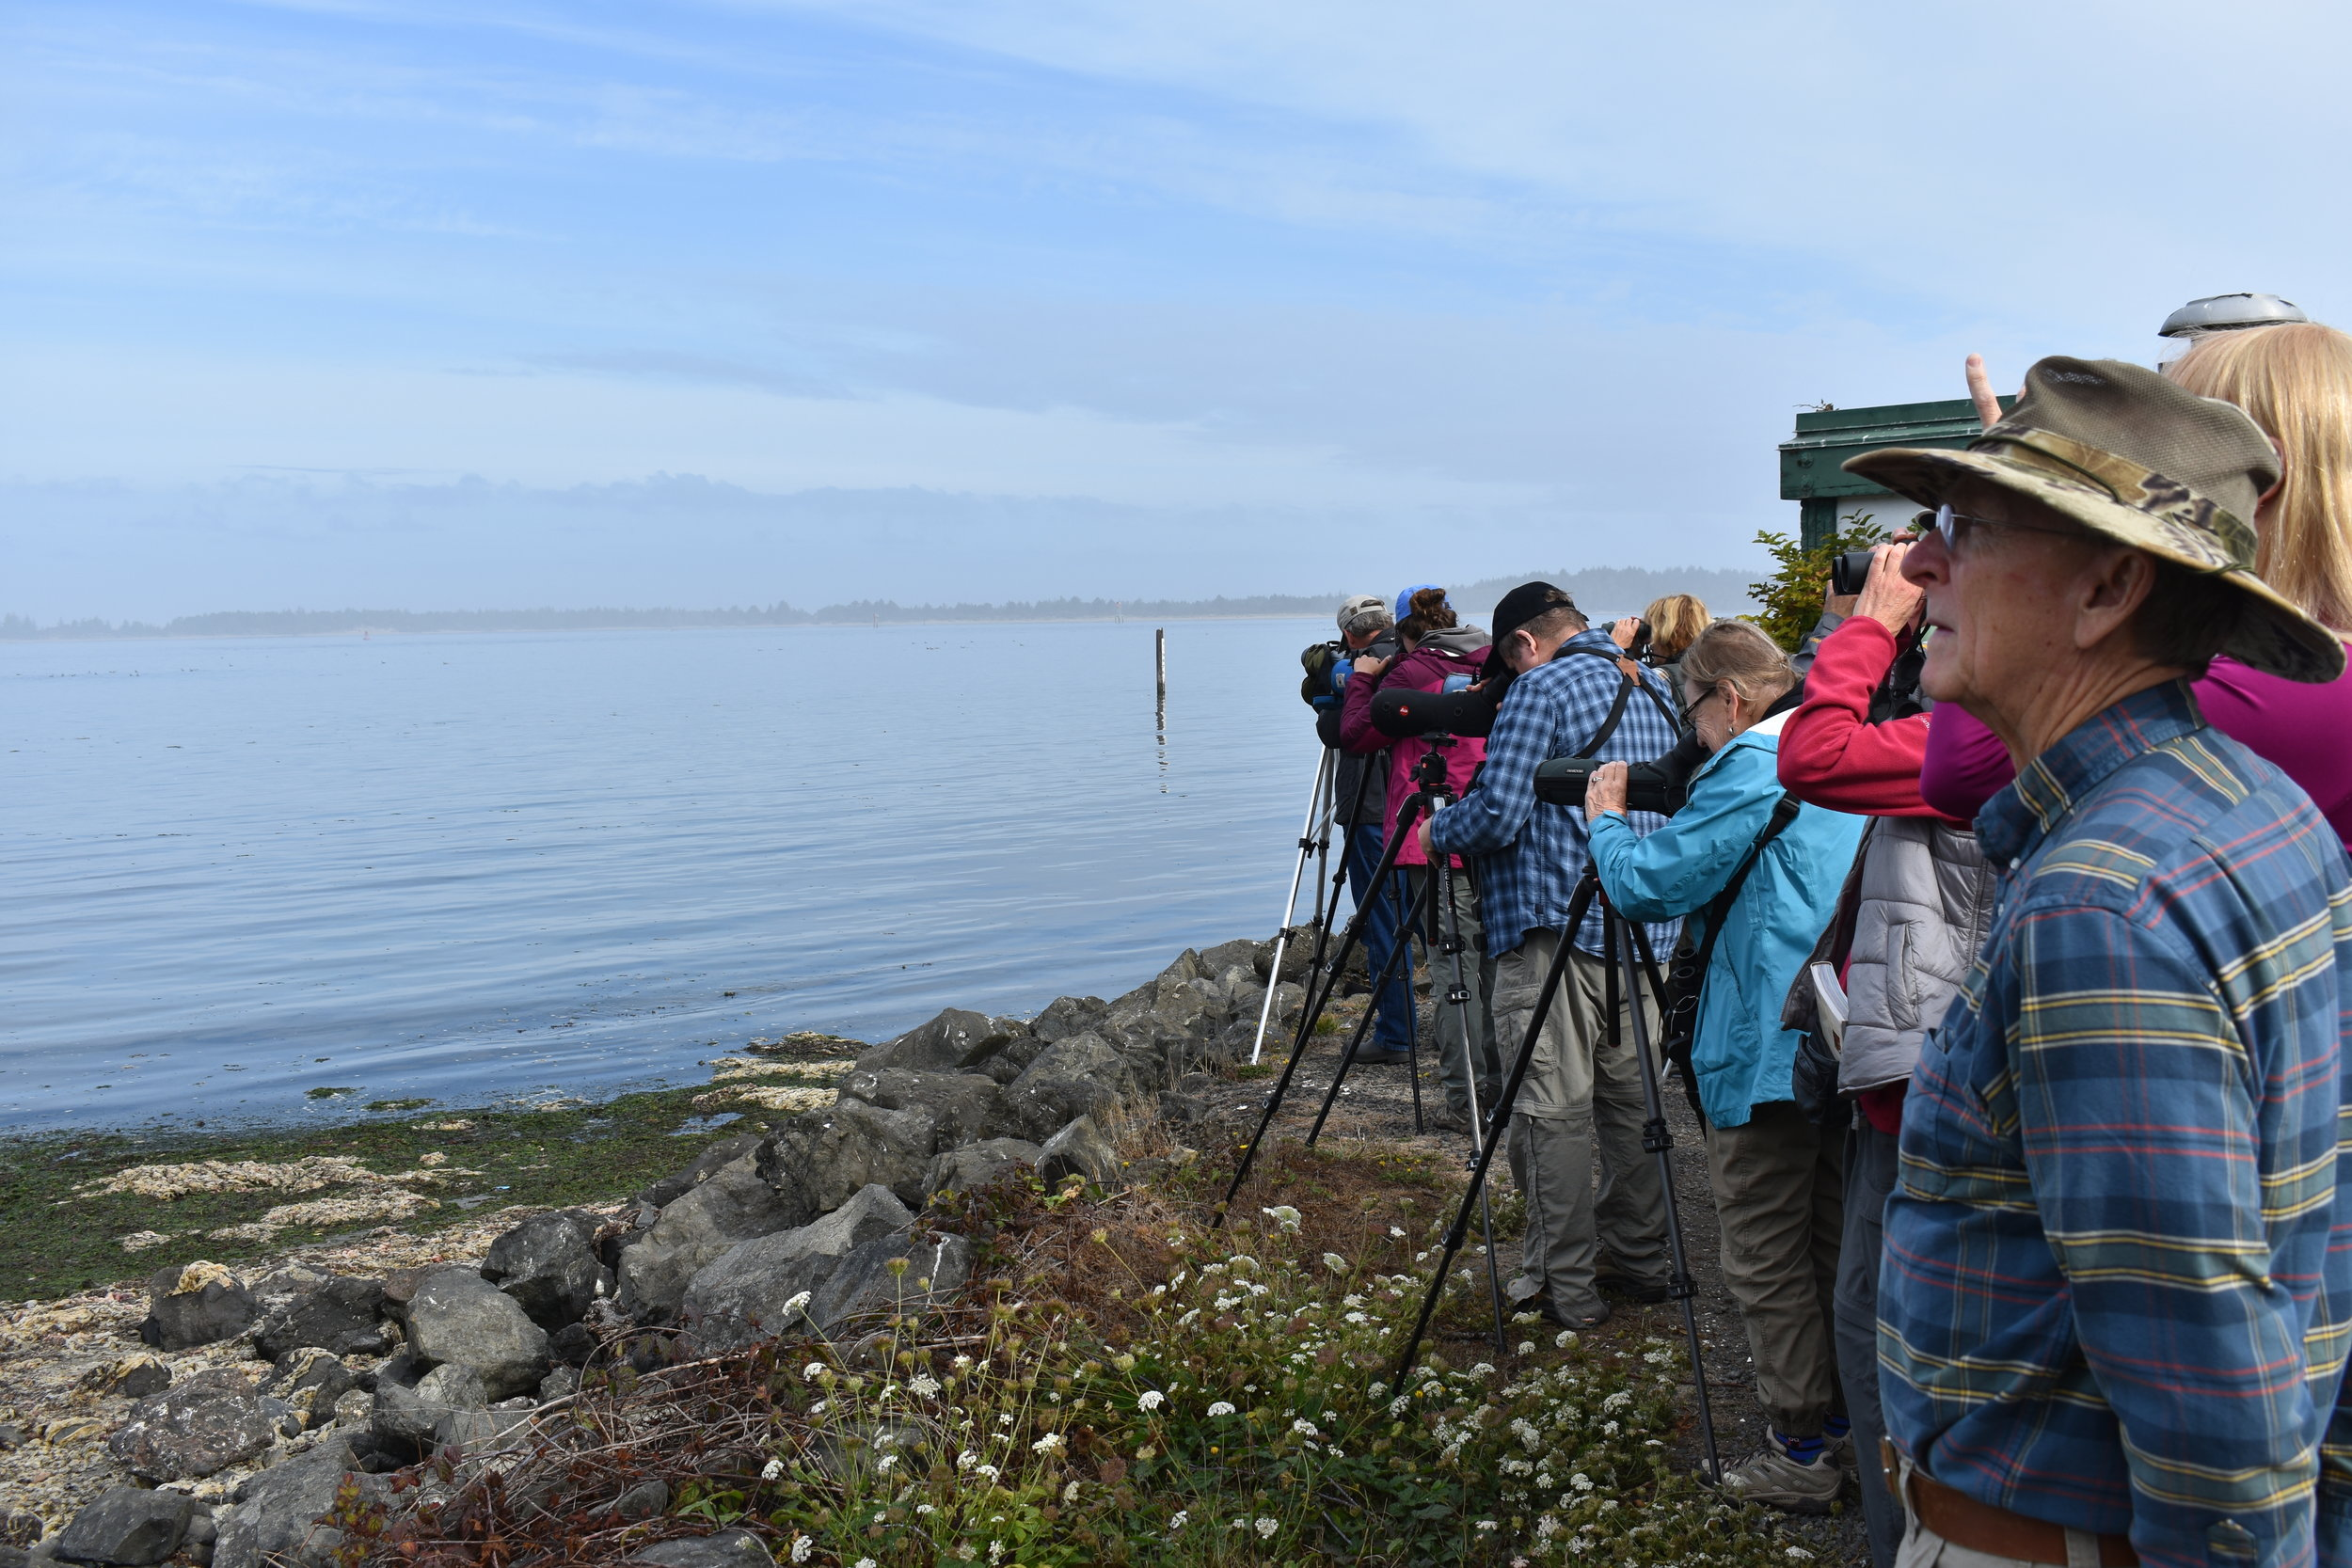 Birding at the South Jetty. Photo by Taylor Brooks